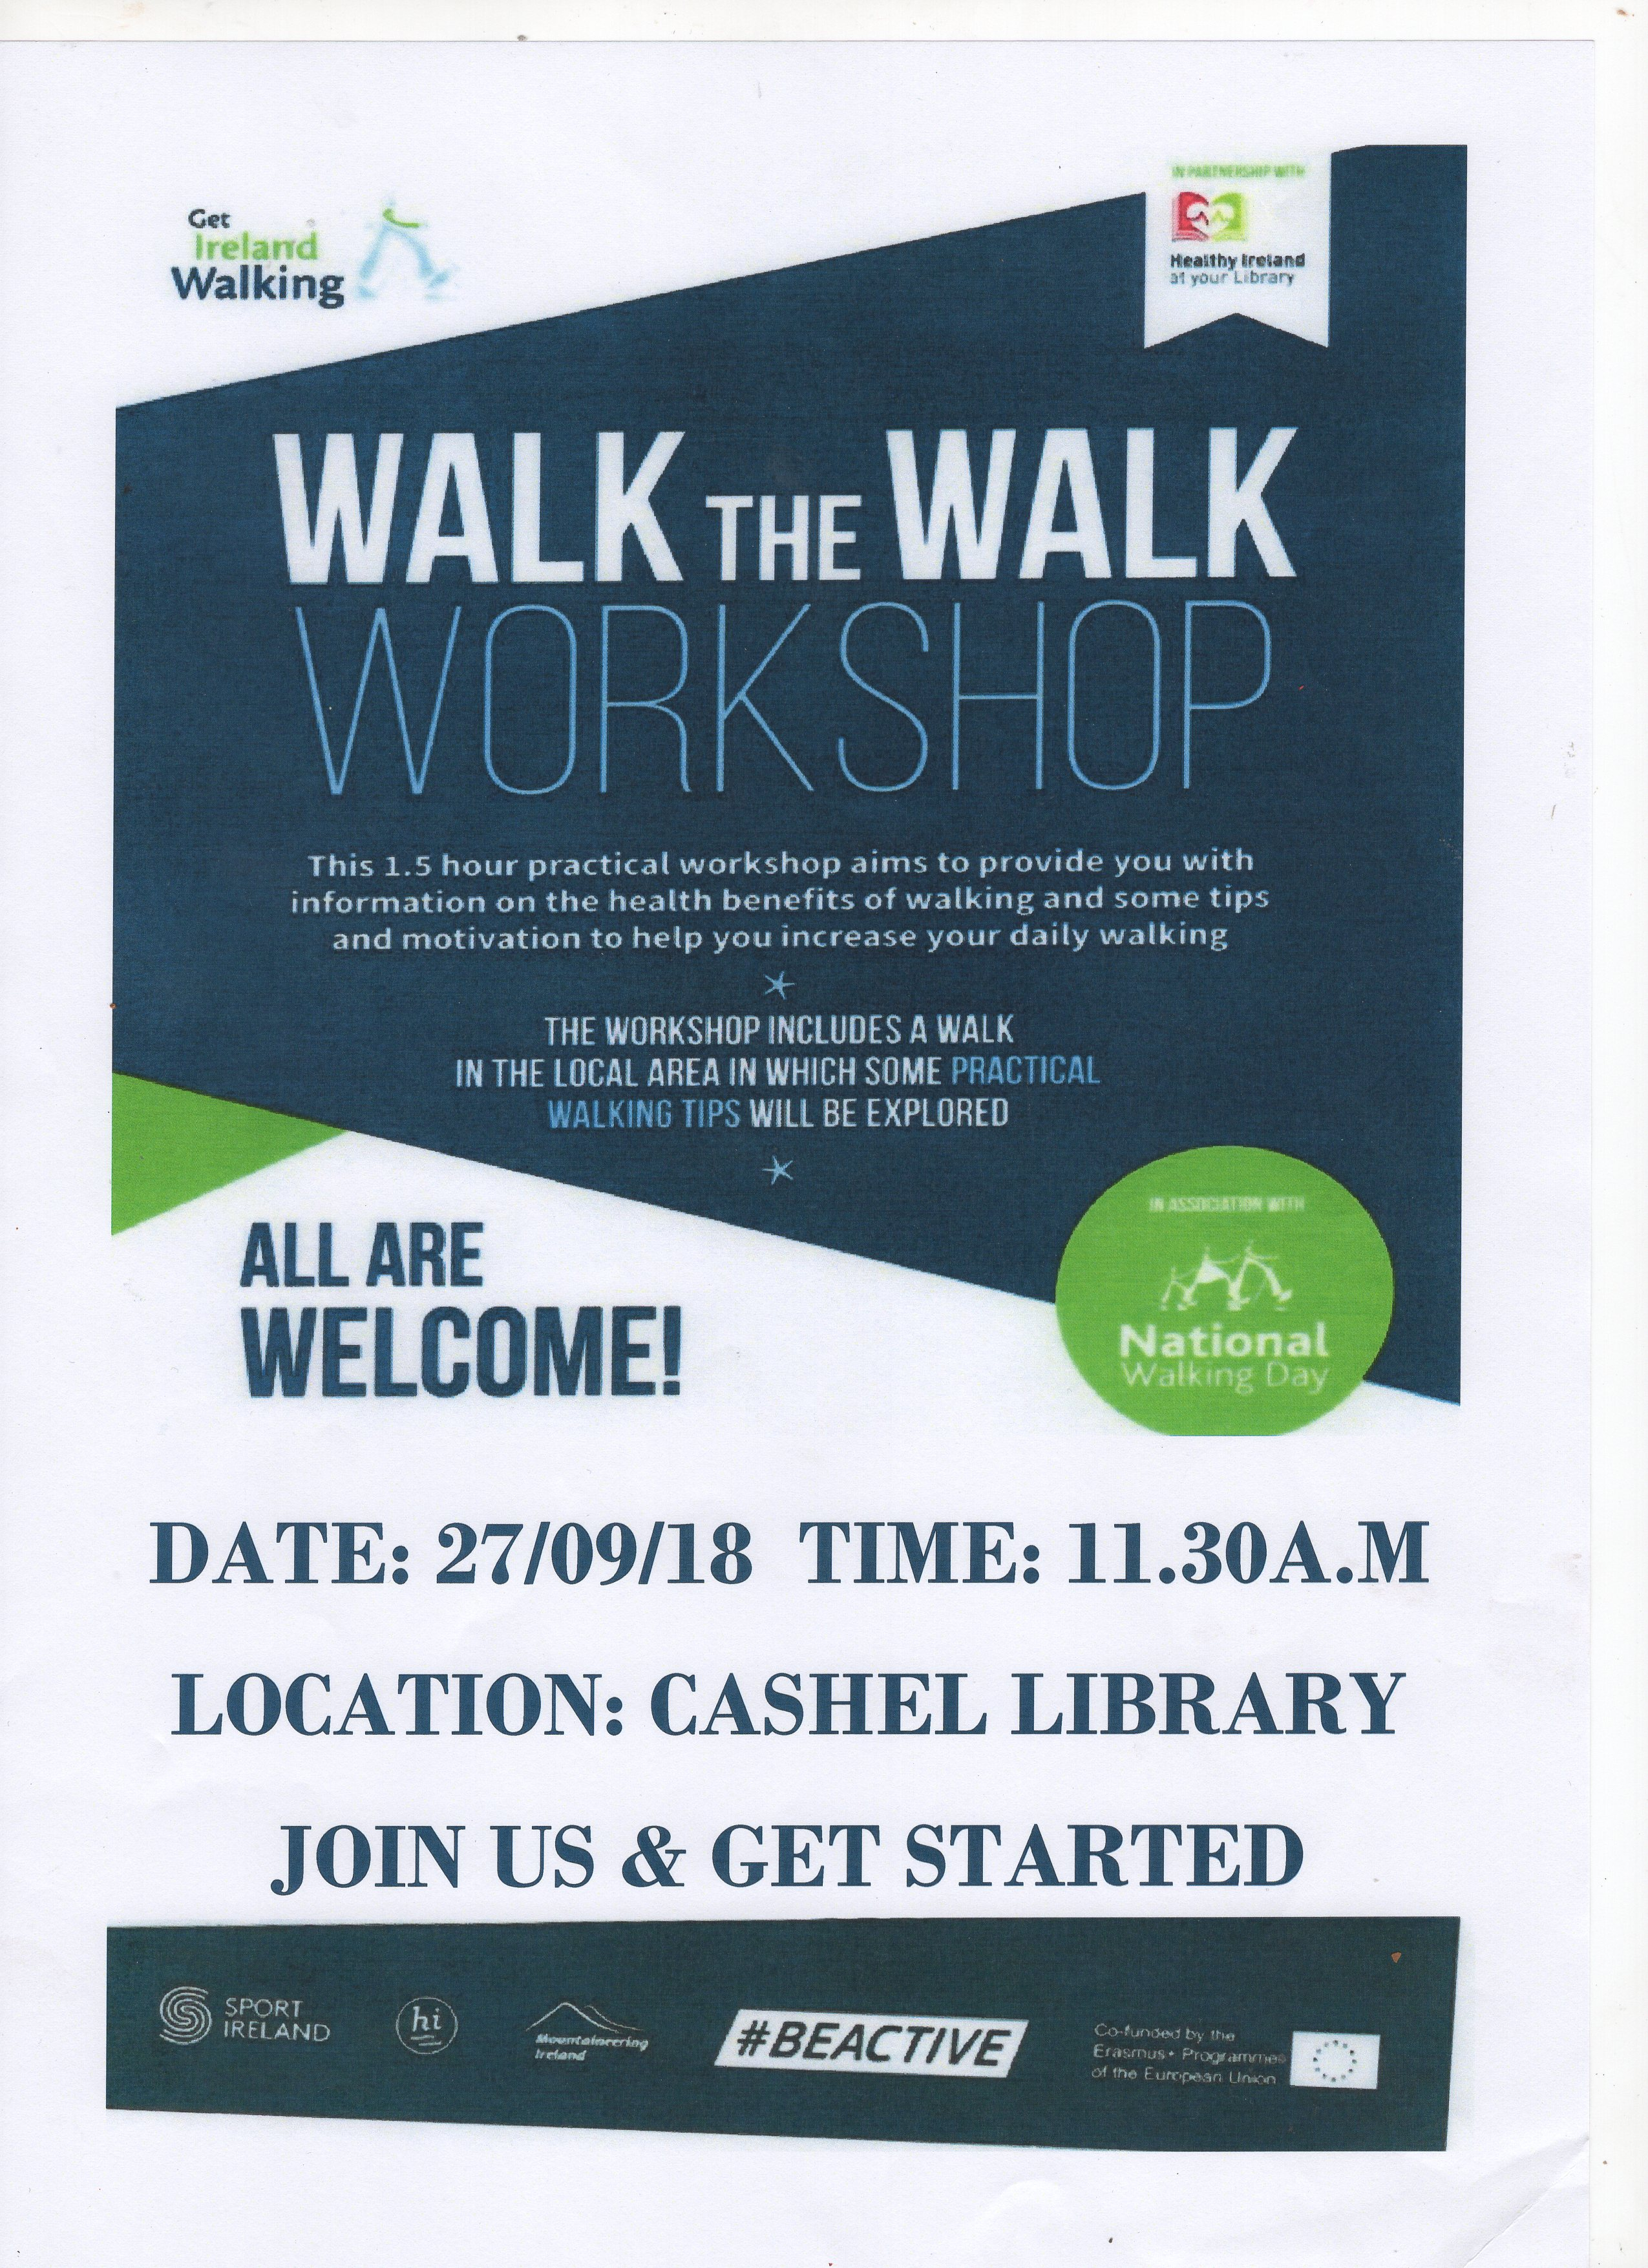 Walk the Walk Workshop in Cashel library